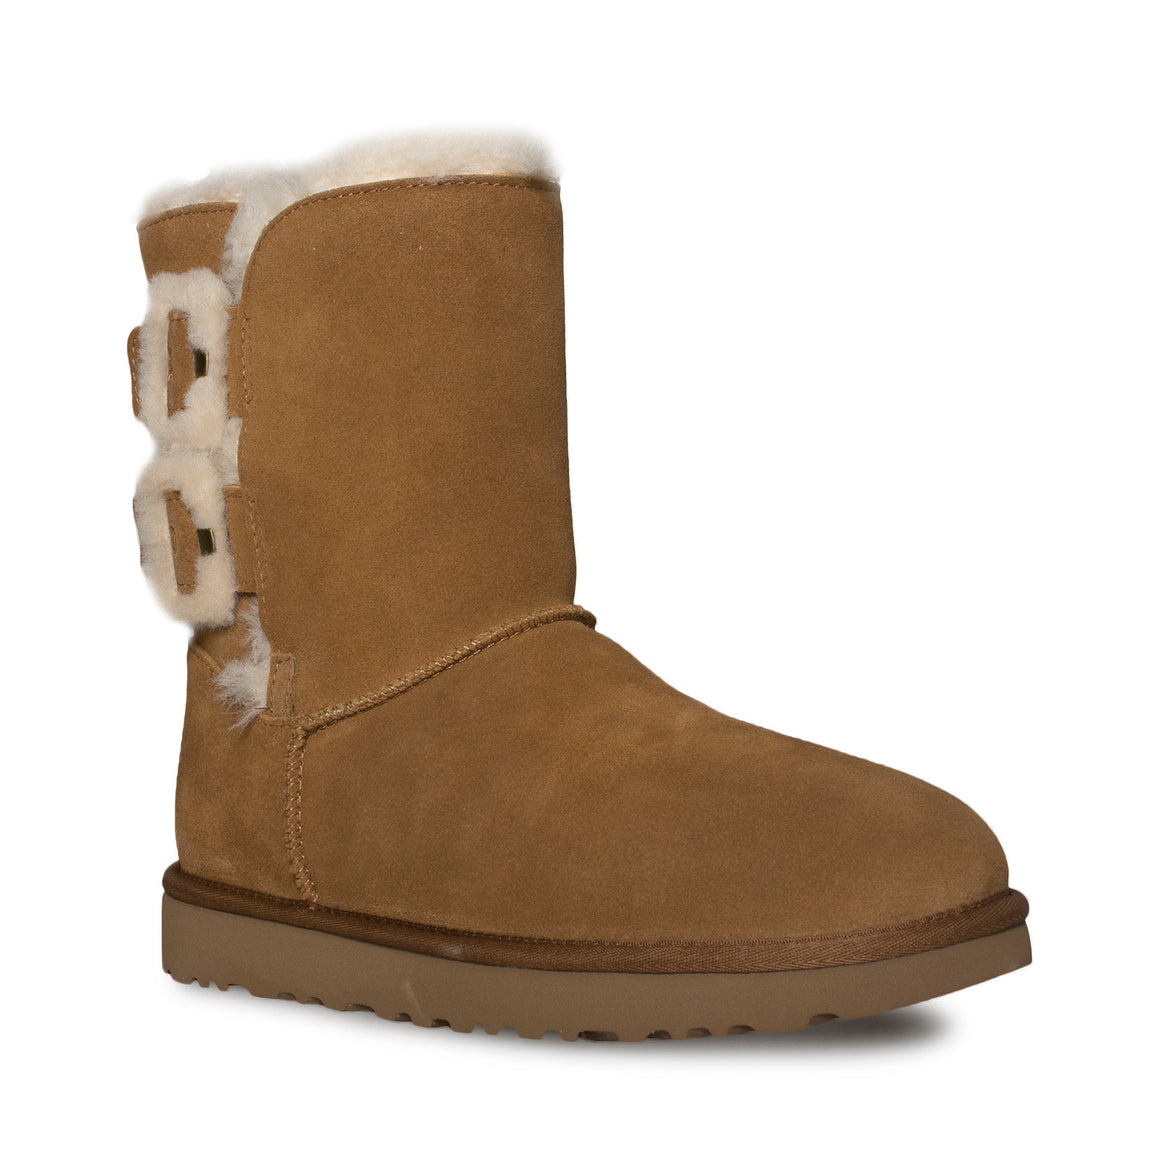 UGG Bailey Fluff Buckle Chestnut Boots - Women's